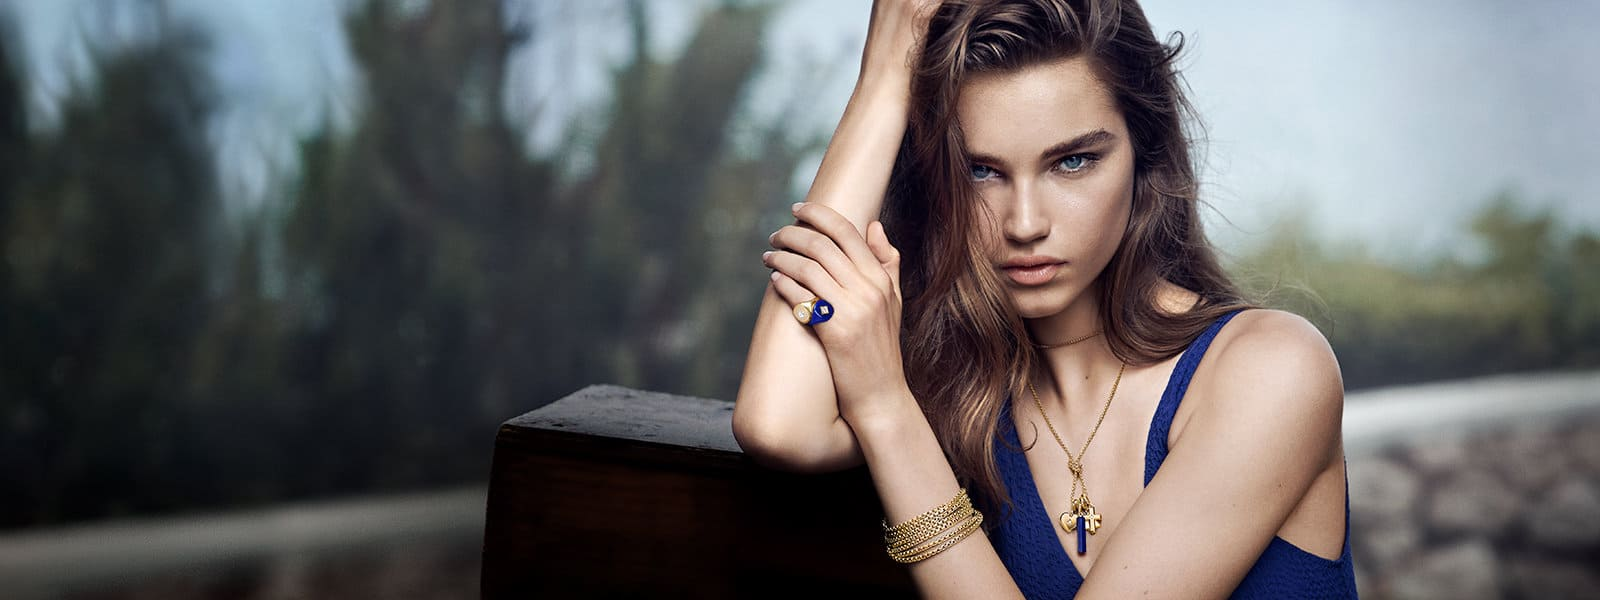 Model Meghan Roche in a tropical forest wearing a blue tank top with David Yurman Pinky Rings in 18K yellow gold or navy enamel-covered 18K yellow gold with white diamonds, chains in 18K yellow gold and Amulets in 18K yellow gold with white diamonds or lapis lazuli.